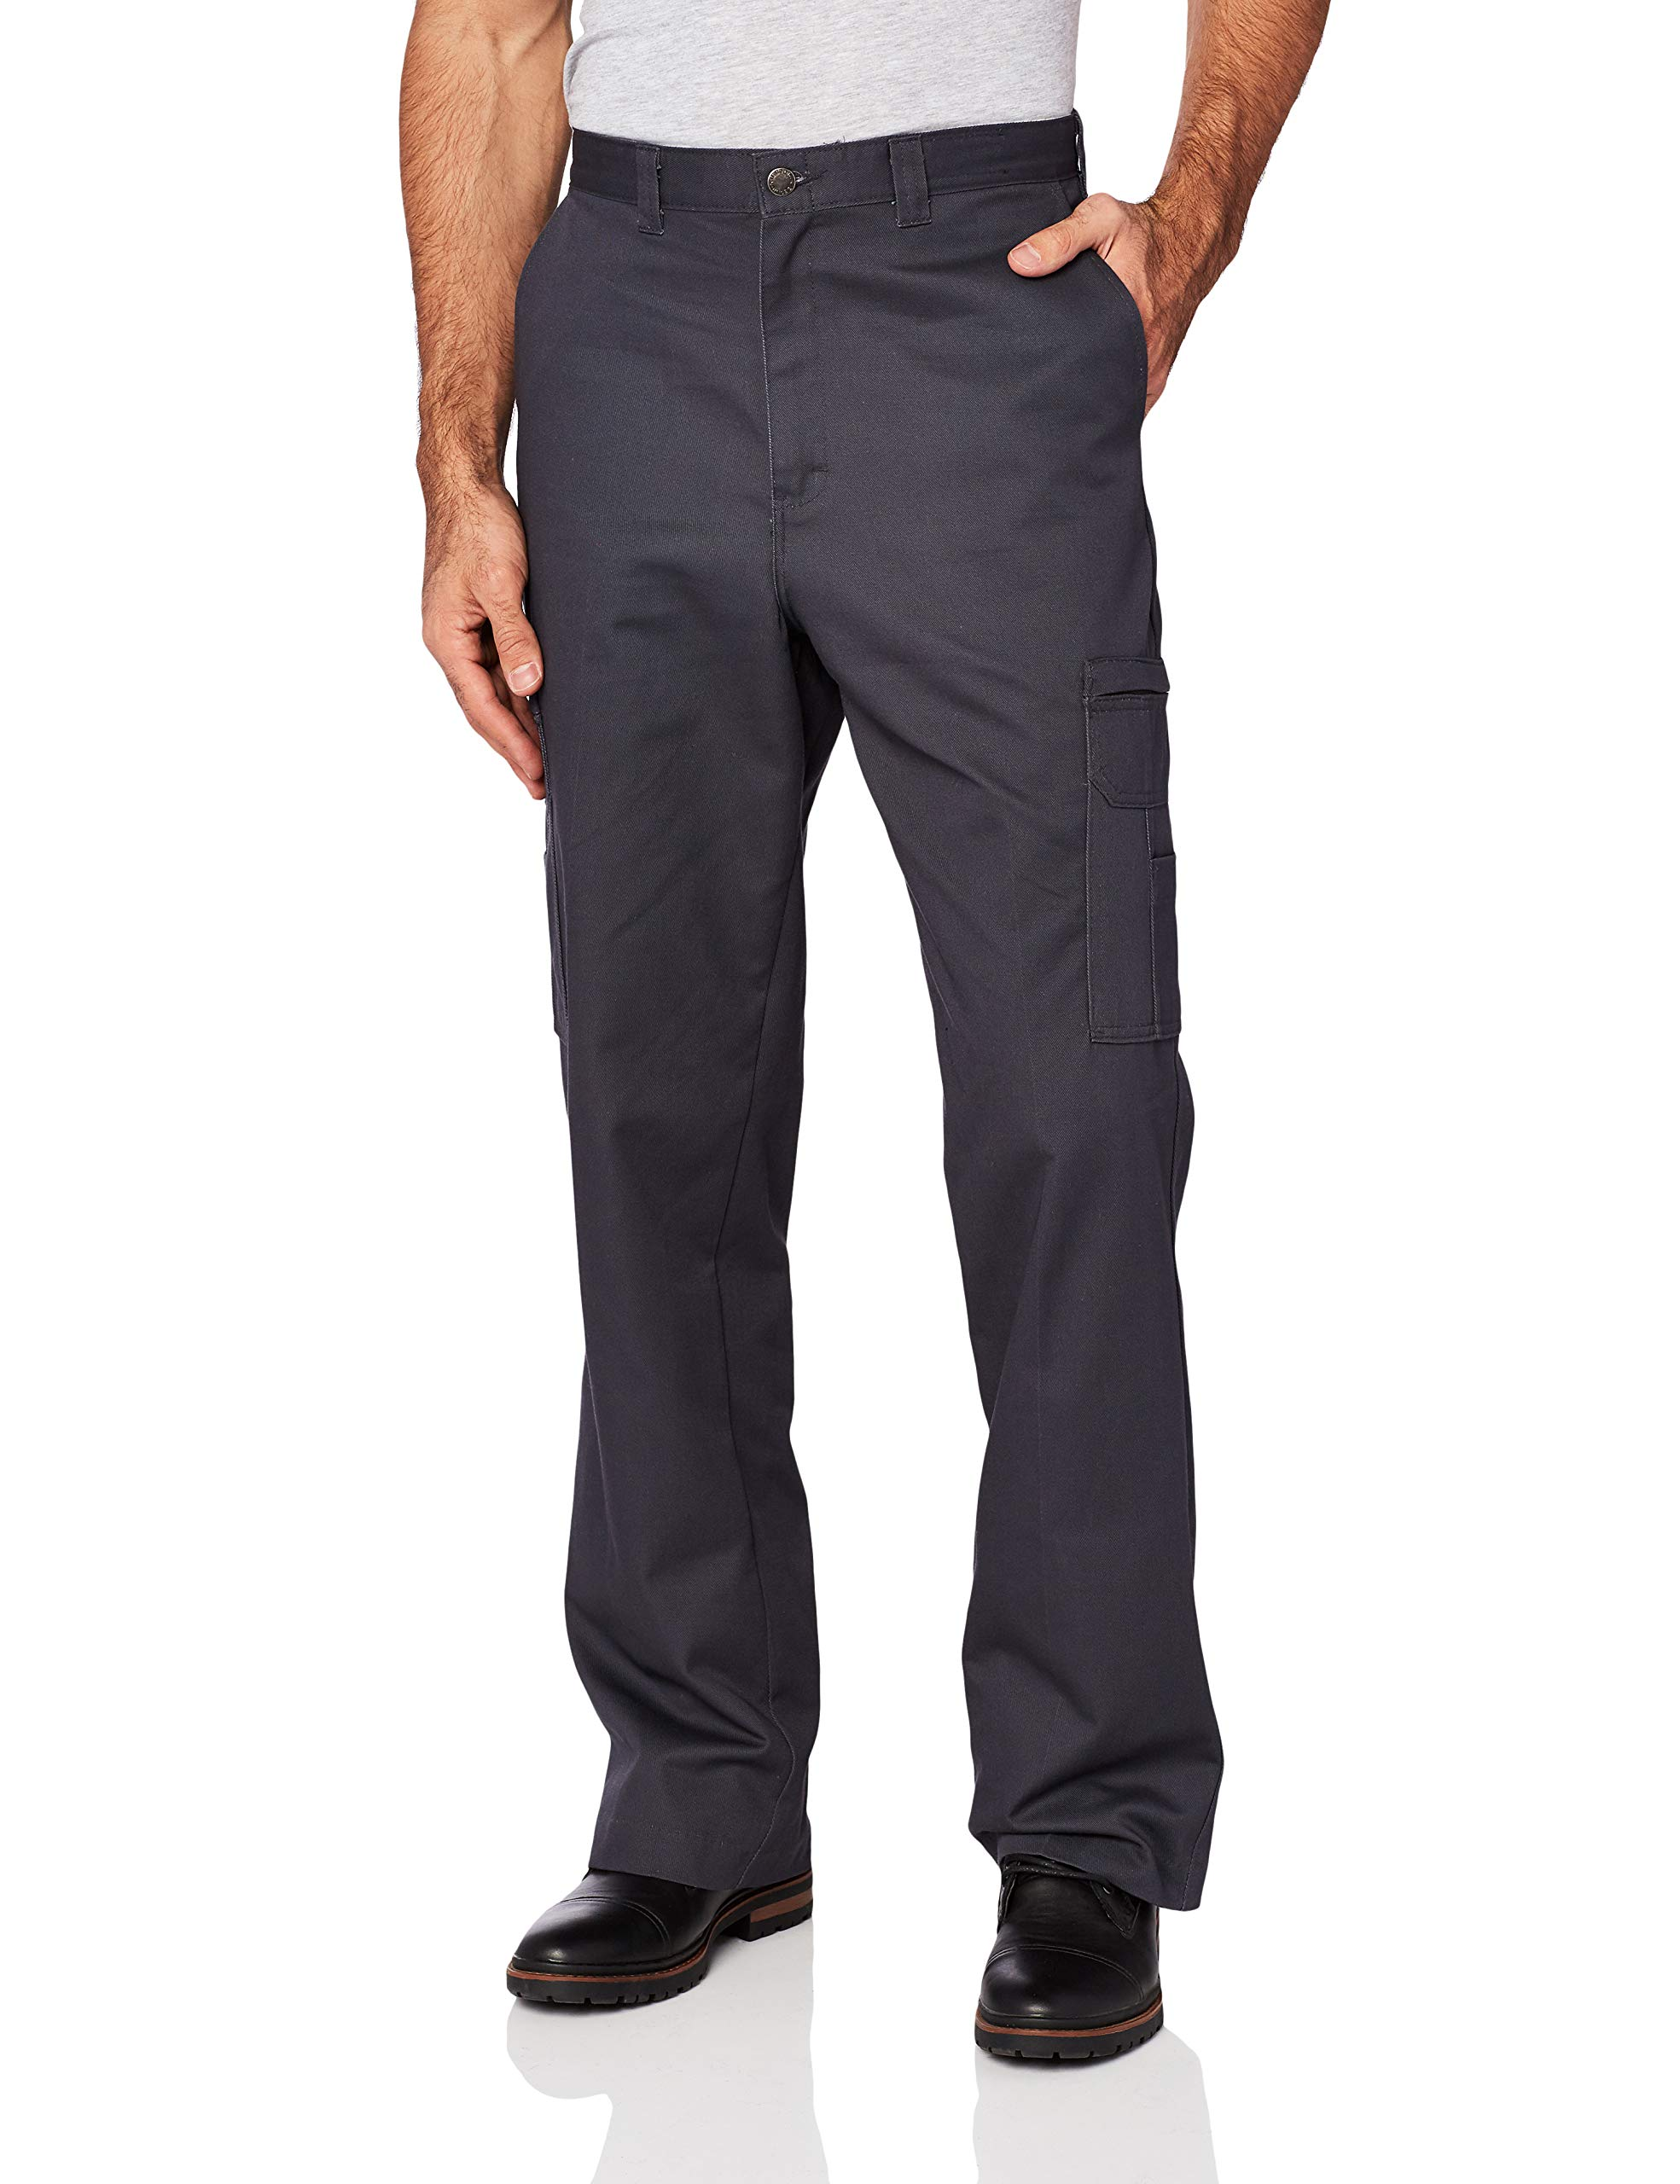 Dickies Occupational Workwear LP337CH Cotton Relaxed Fit Men's Industrial Cargo Pant with Straight Leg Dark Charcoal